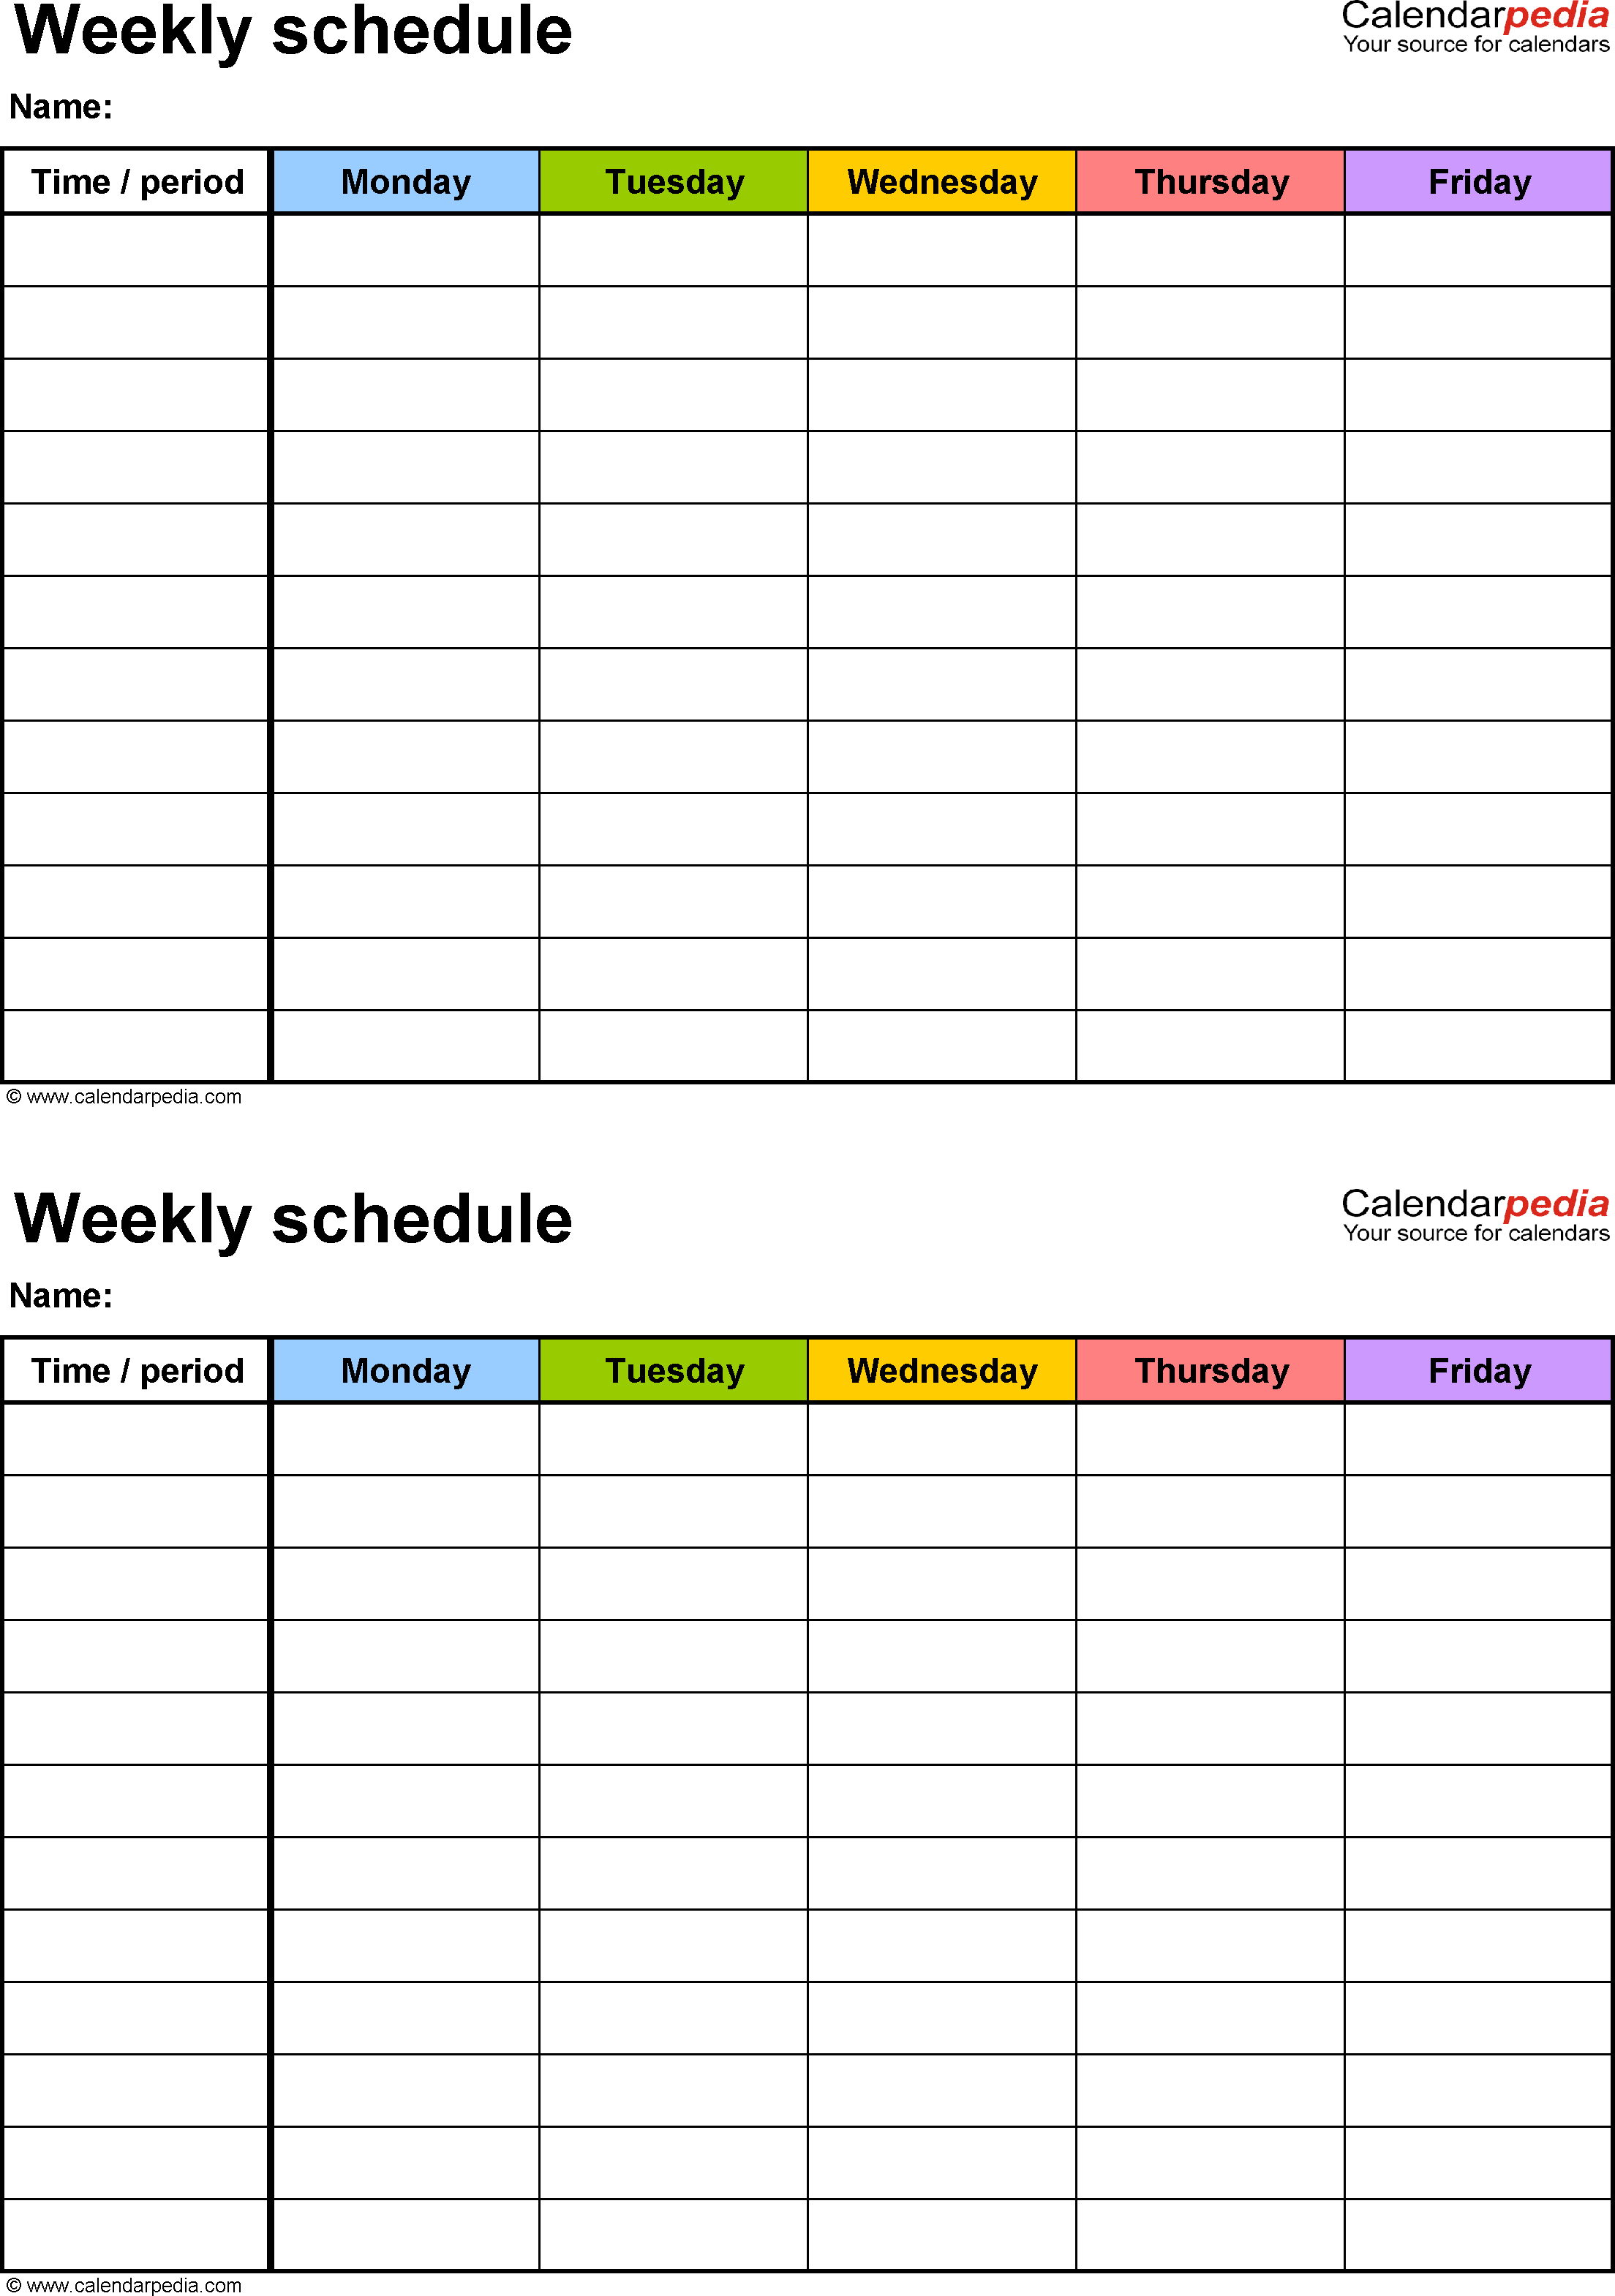 Free Weekly Schedule Templates For Word - 18 Templates with regard to Weekly Planner Template For Students